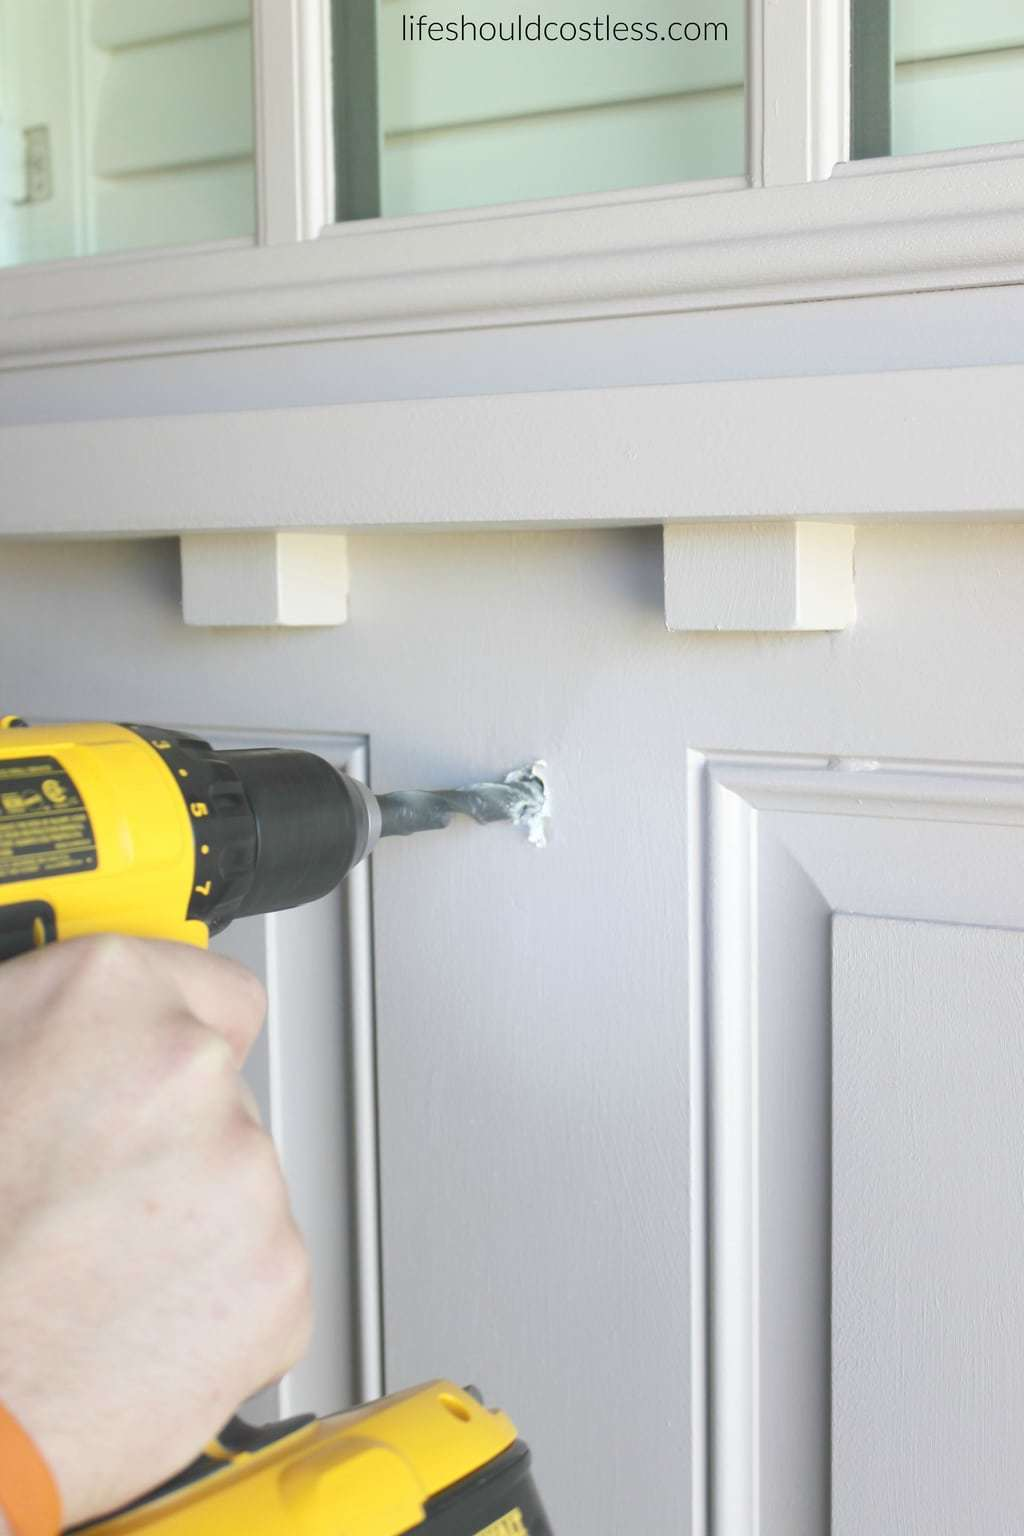 DIY How to install a peep hole in your front door. It's so easy and inexpensive! It takes less than five minutes and costs less than ten bucks. See this popular DIY pin and many others at lifeshouldcostless.com.